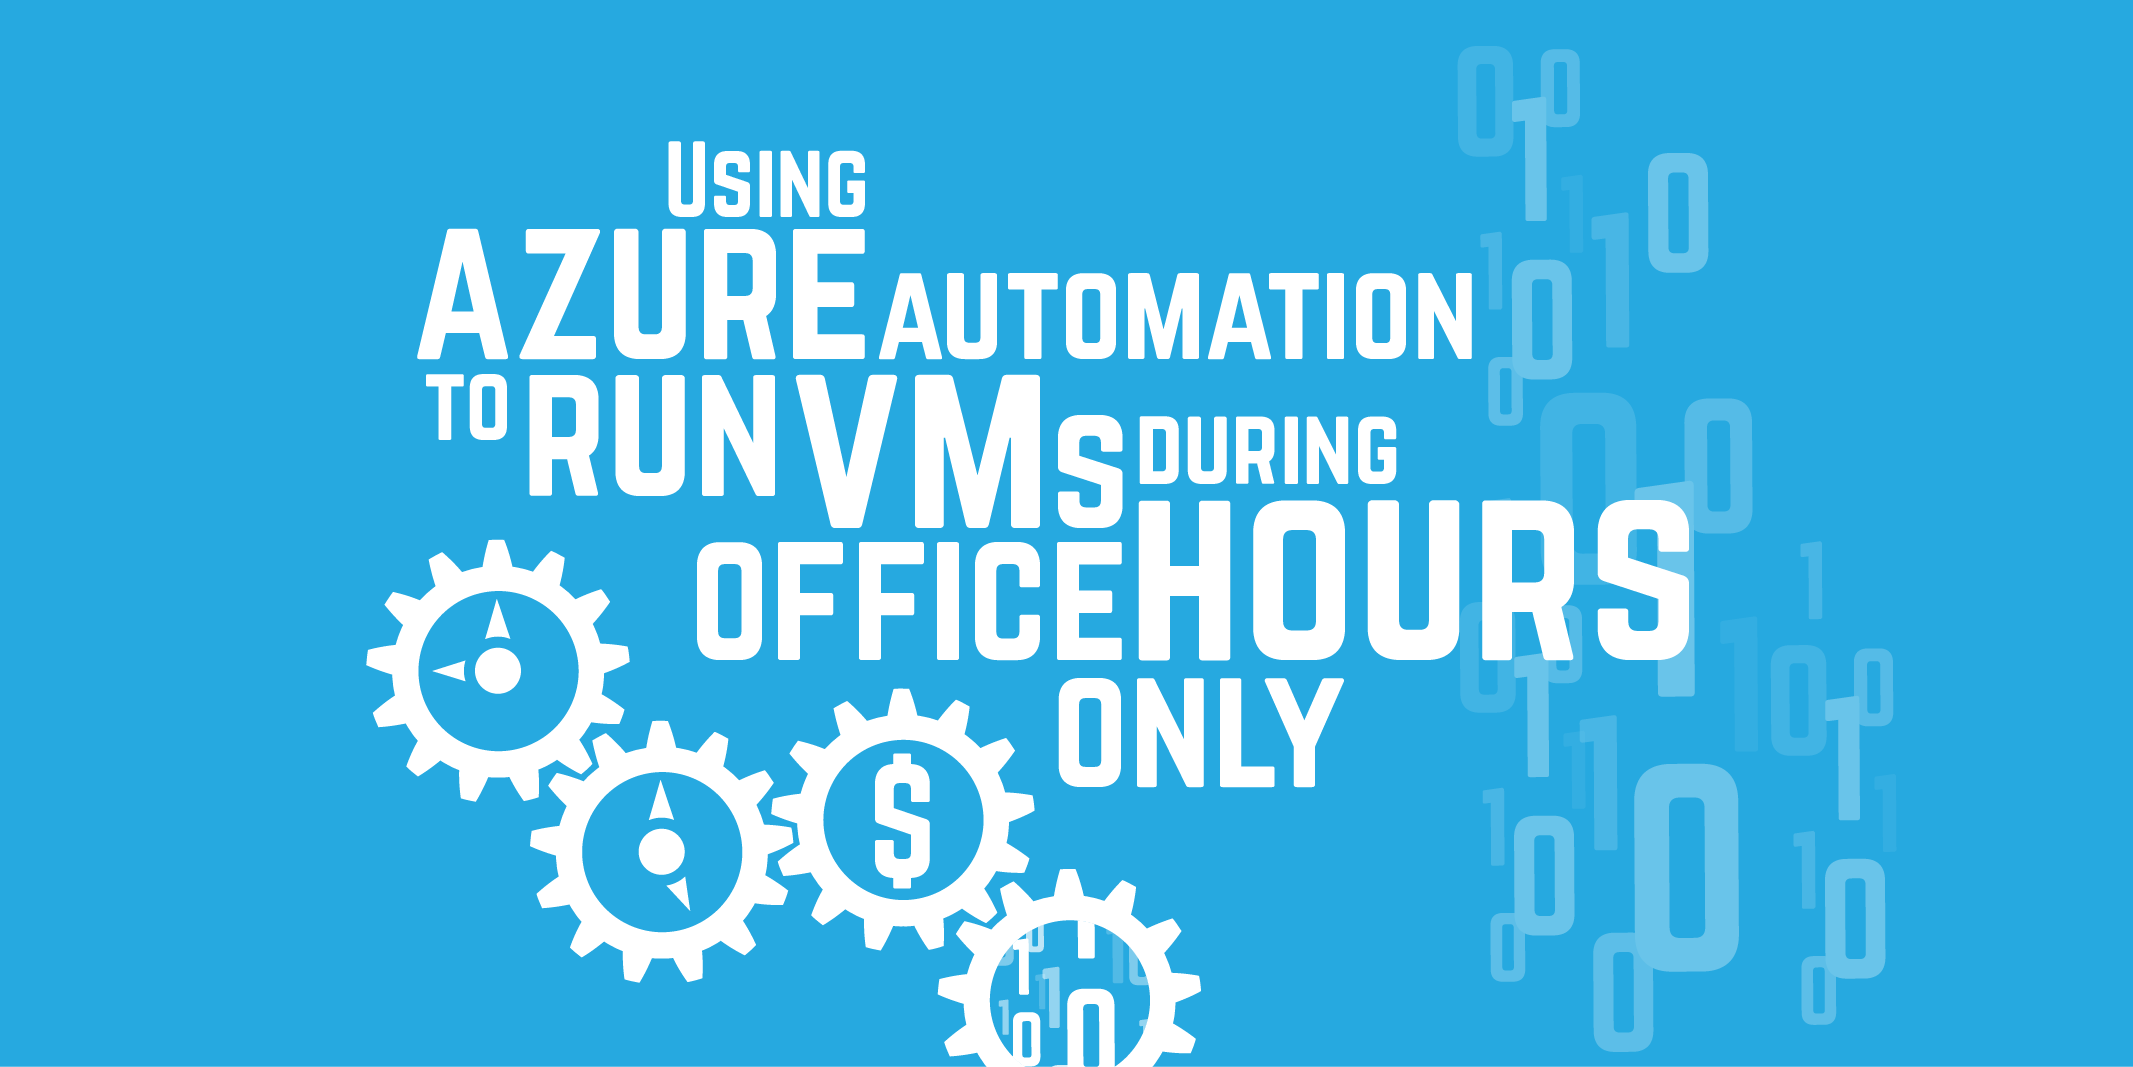 Using Azure Automation to run VMs during office hours only – using graphical runbooks